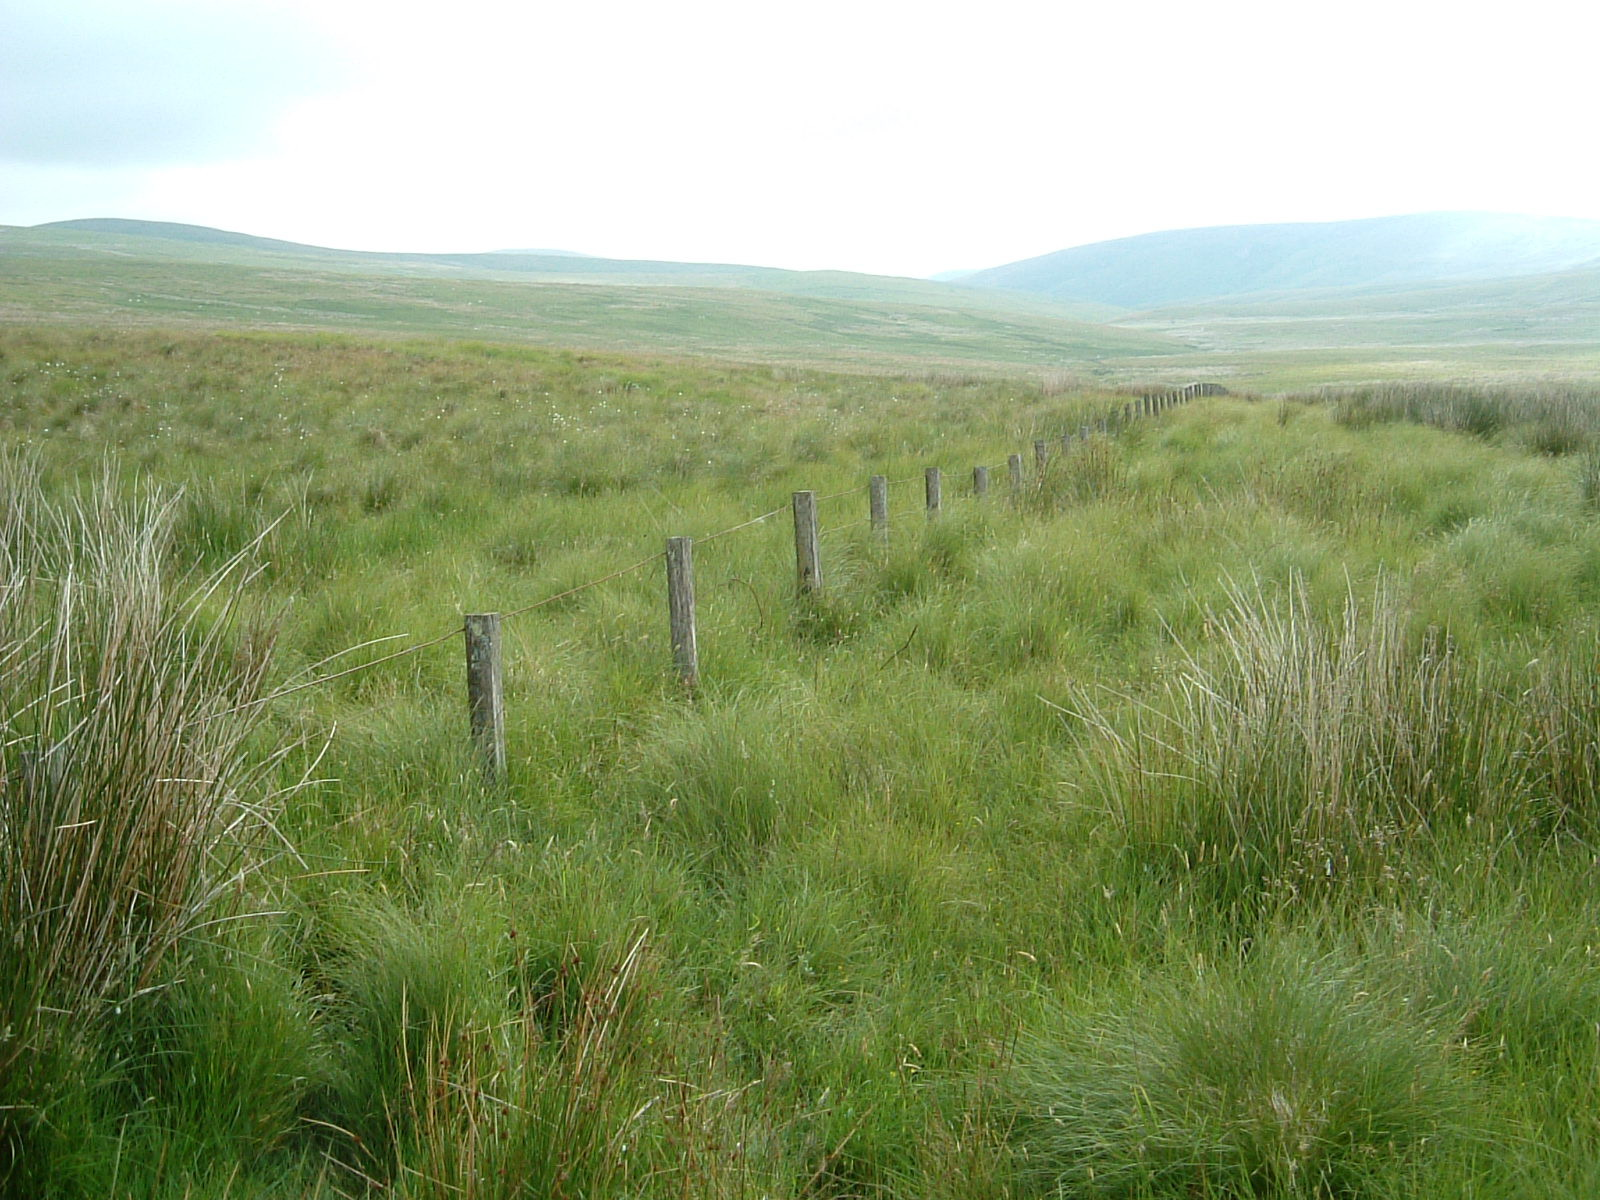 A fence marking the Scottish border